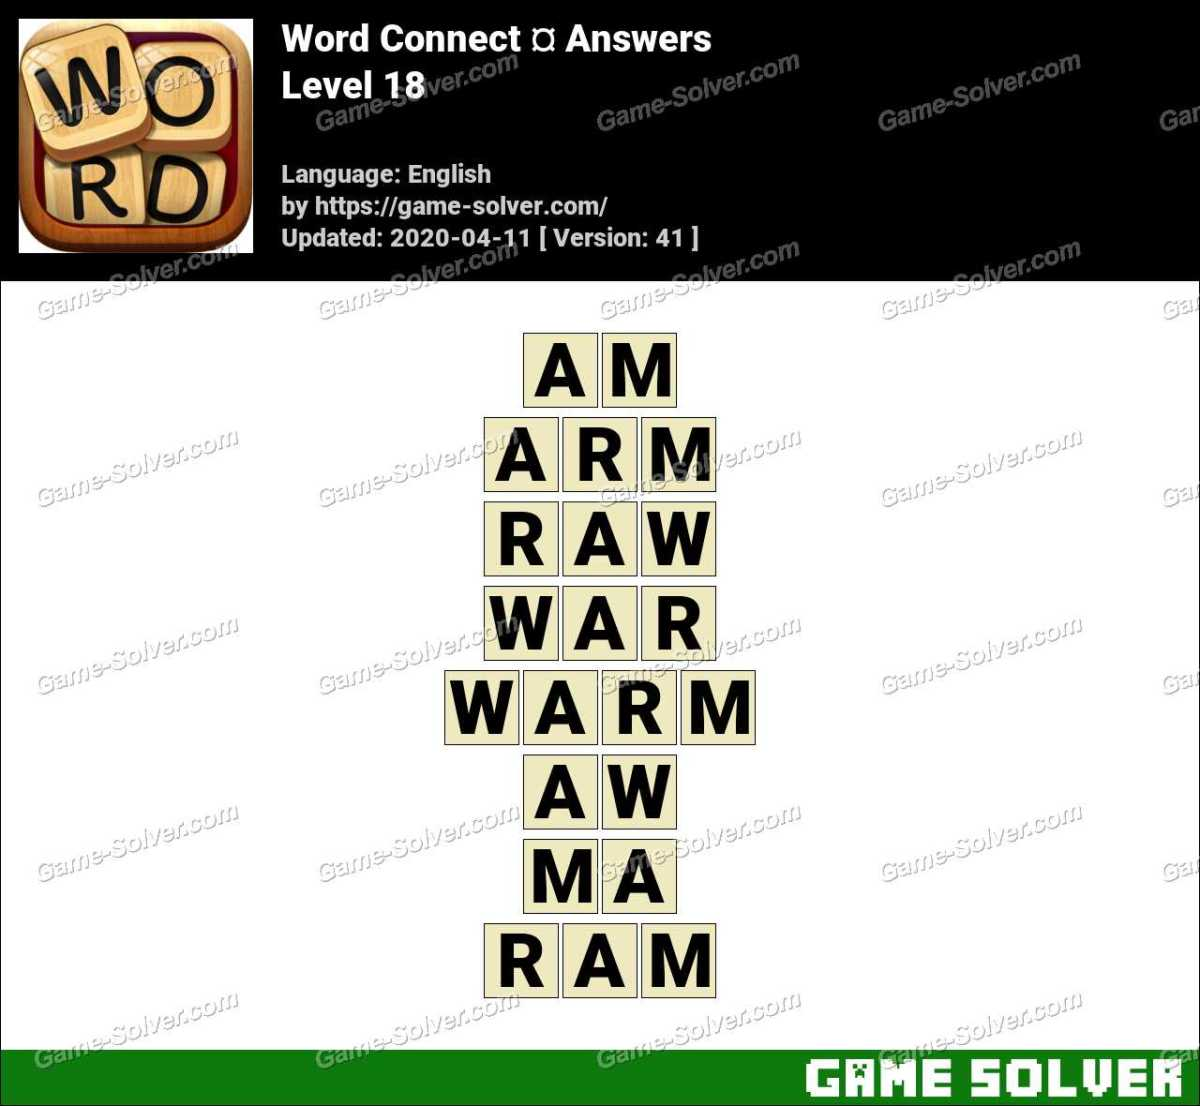 Word Connect Level 18 Answers